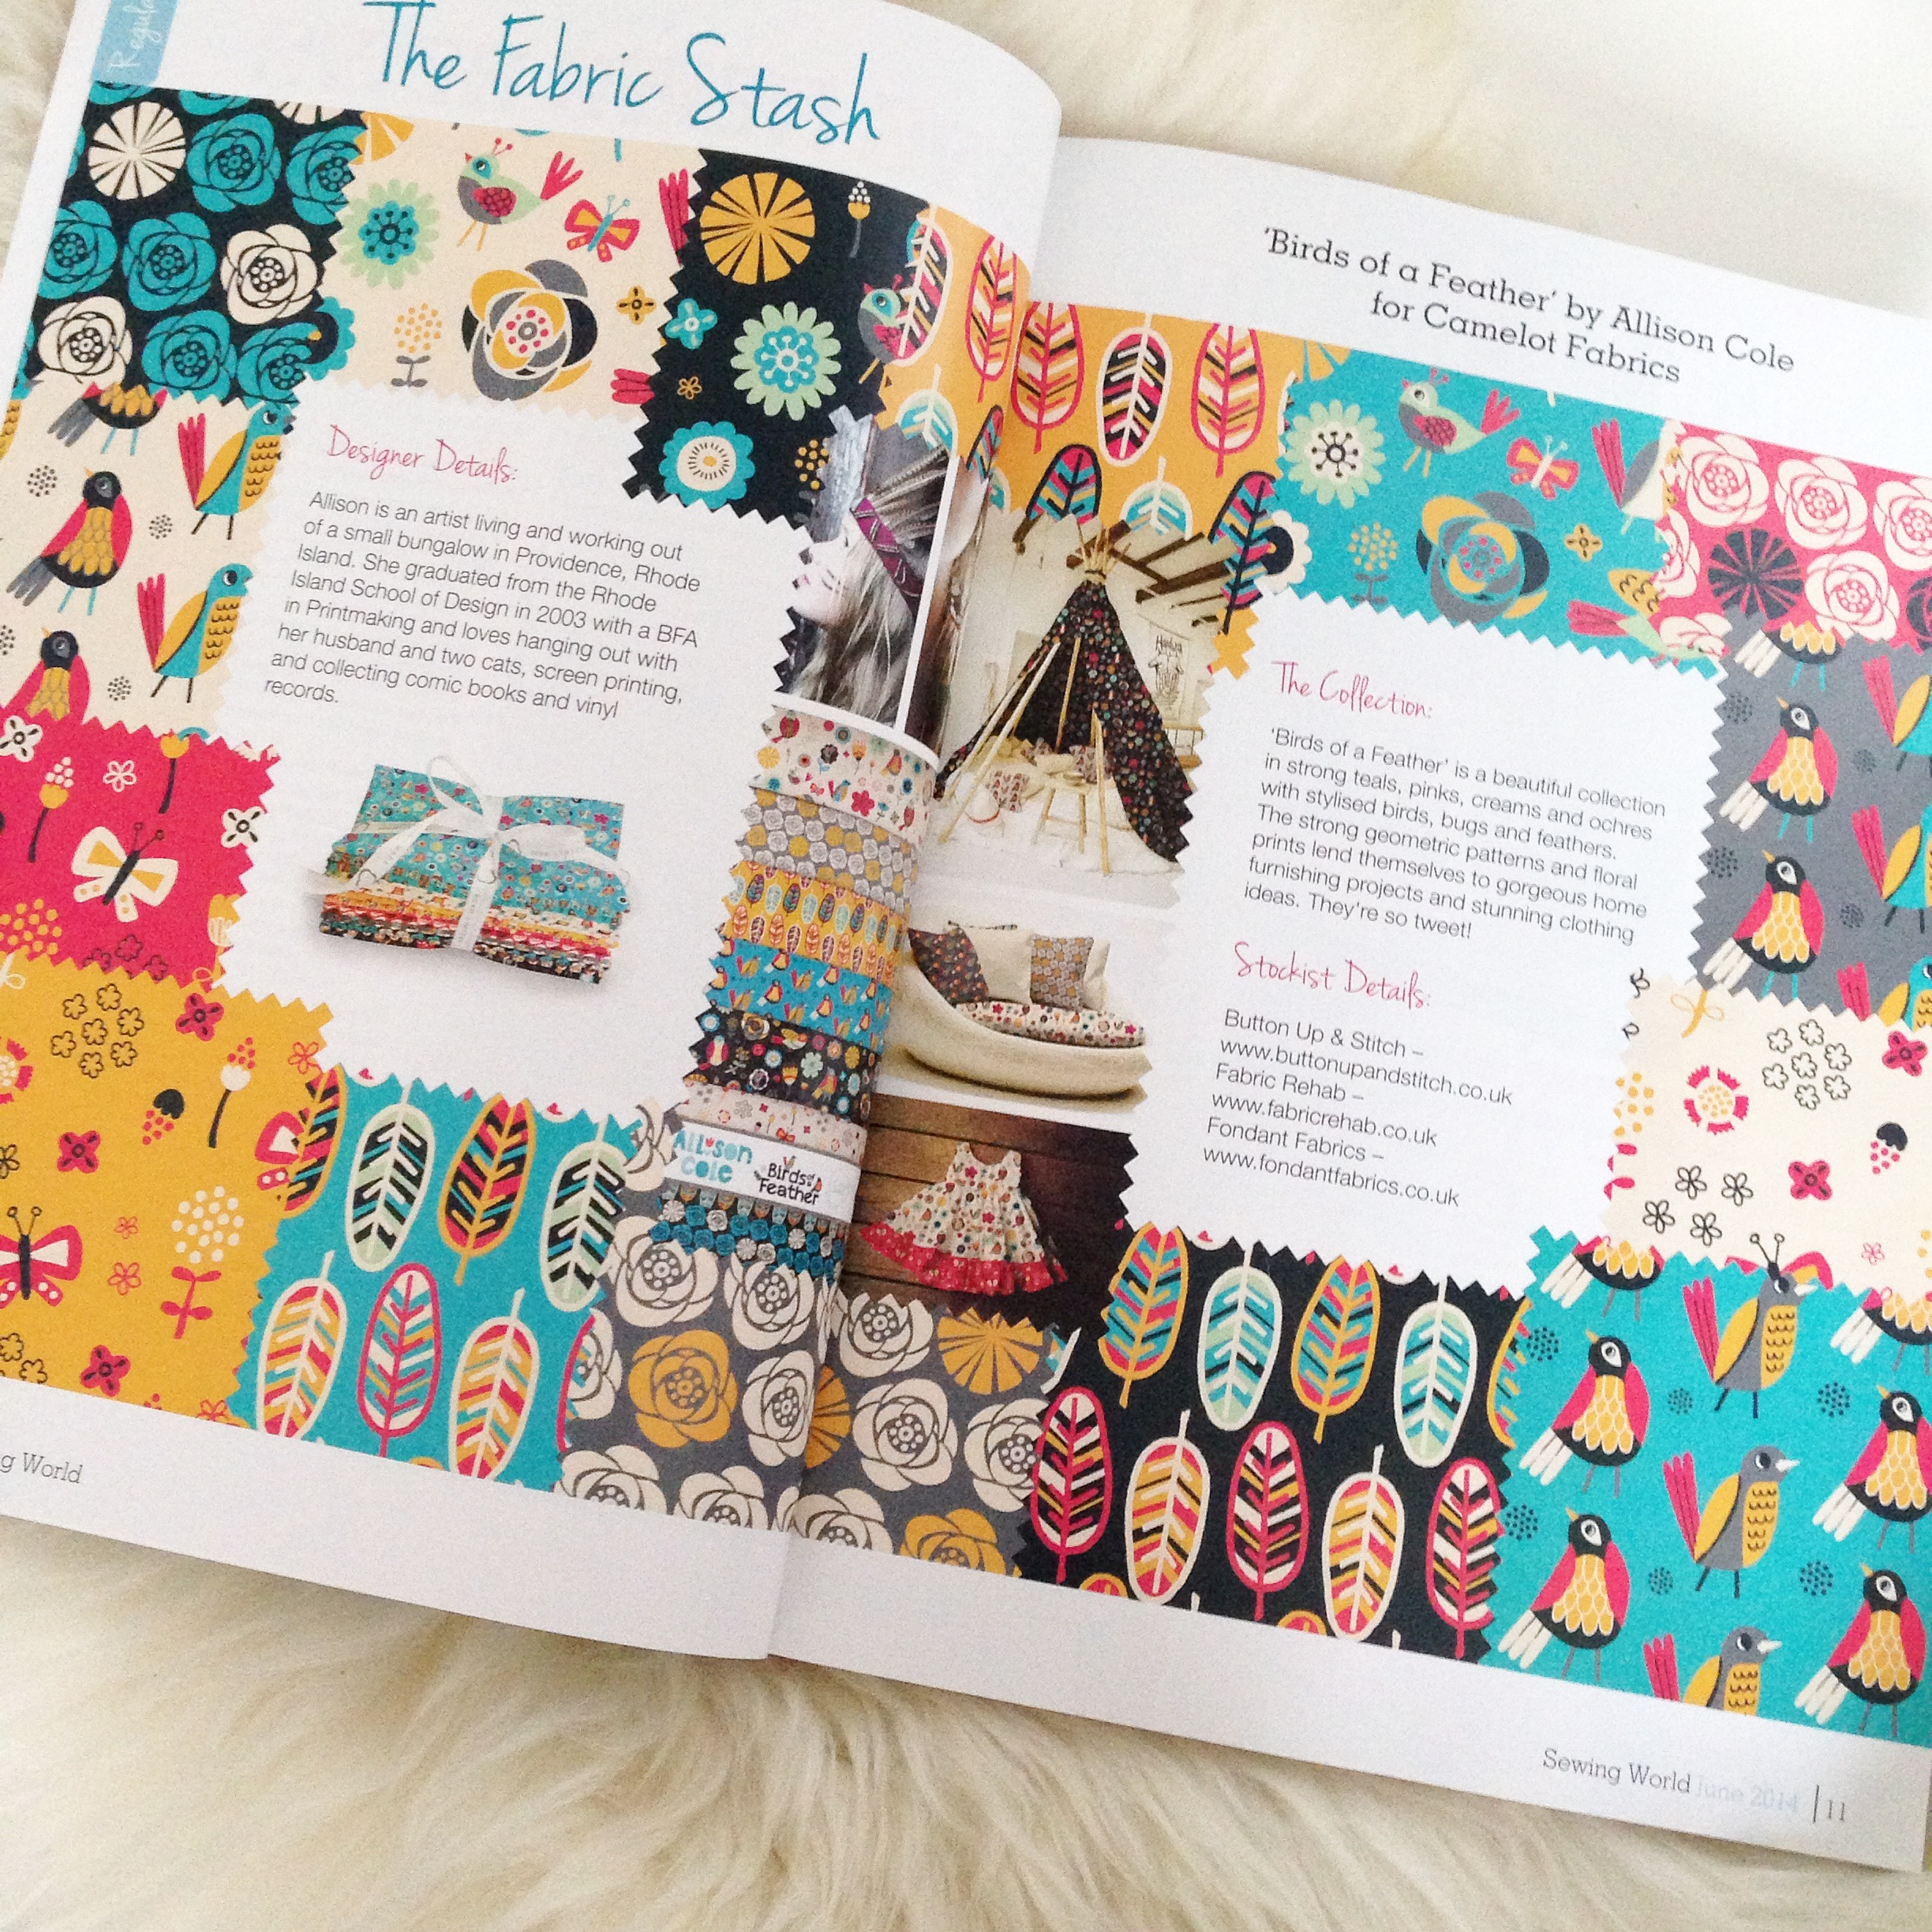 Thankful thursday sewing world magazine feature camelot fabrics be sure to check out the sewing world magazines website to find out how to get your hands on their latest issue and for even more jeuxipadfo Choice Image